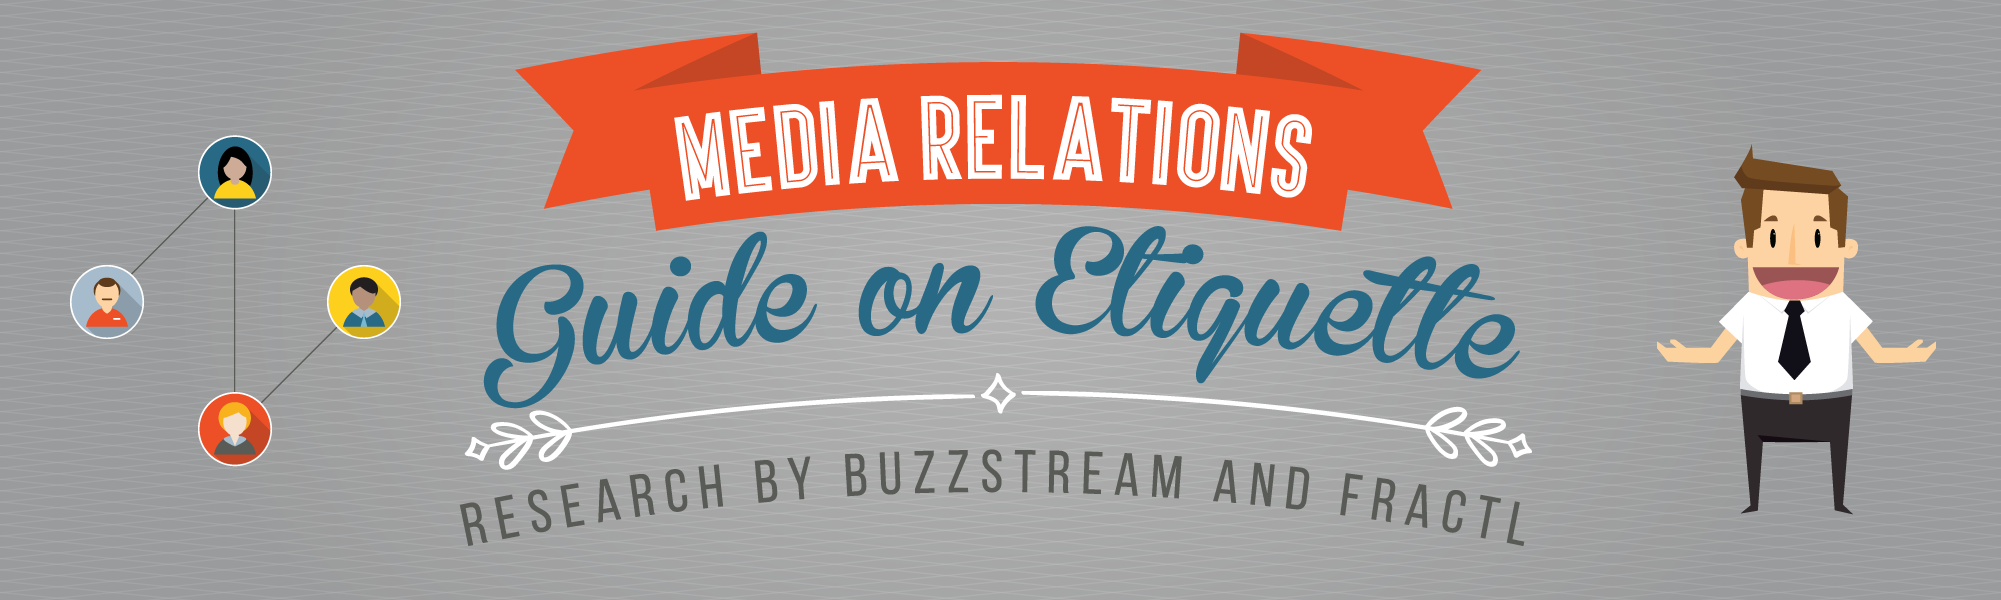 Media Relations Guide on Etiquette